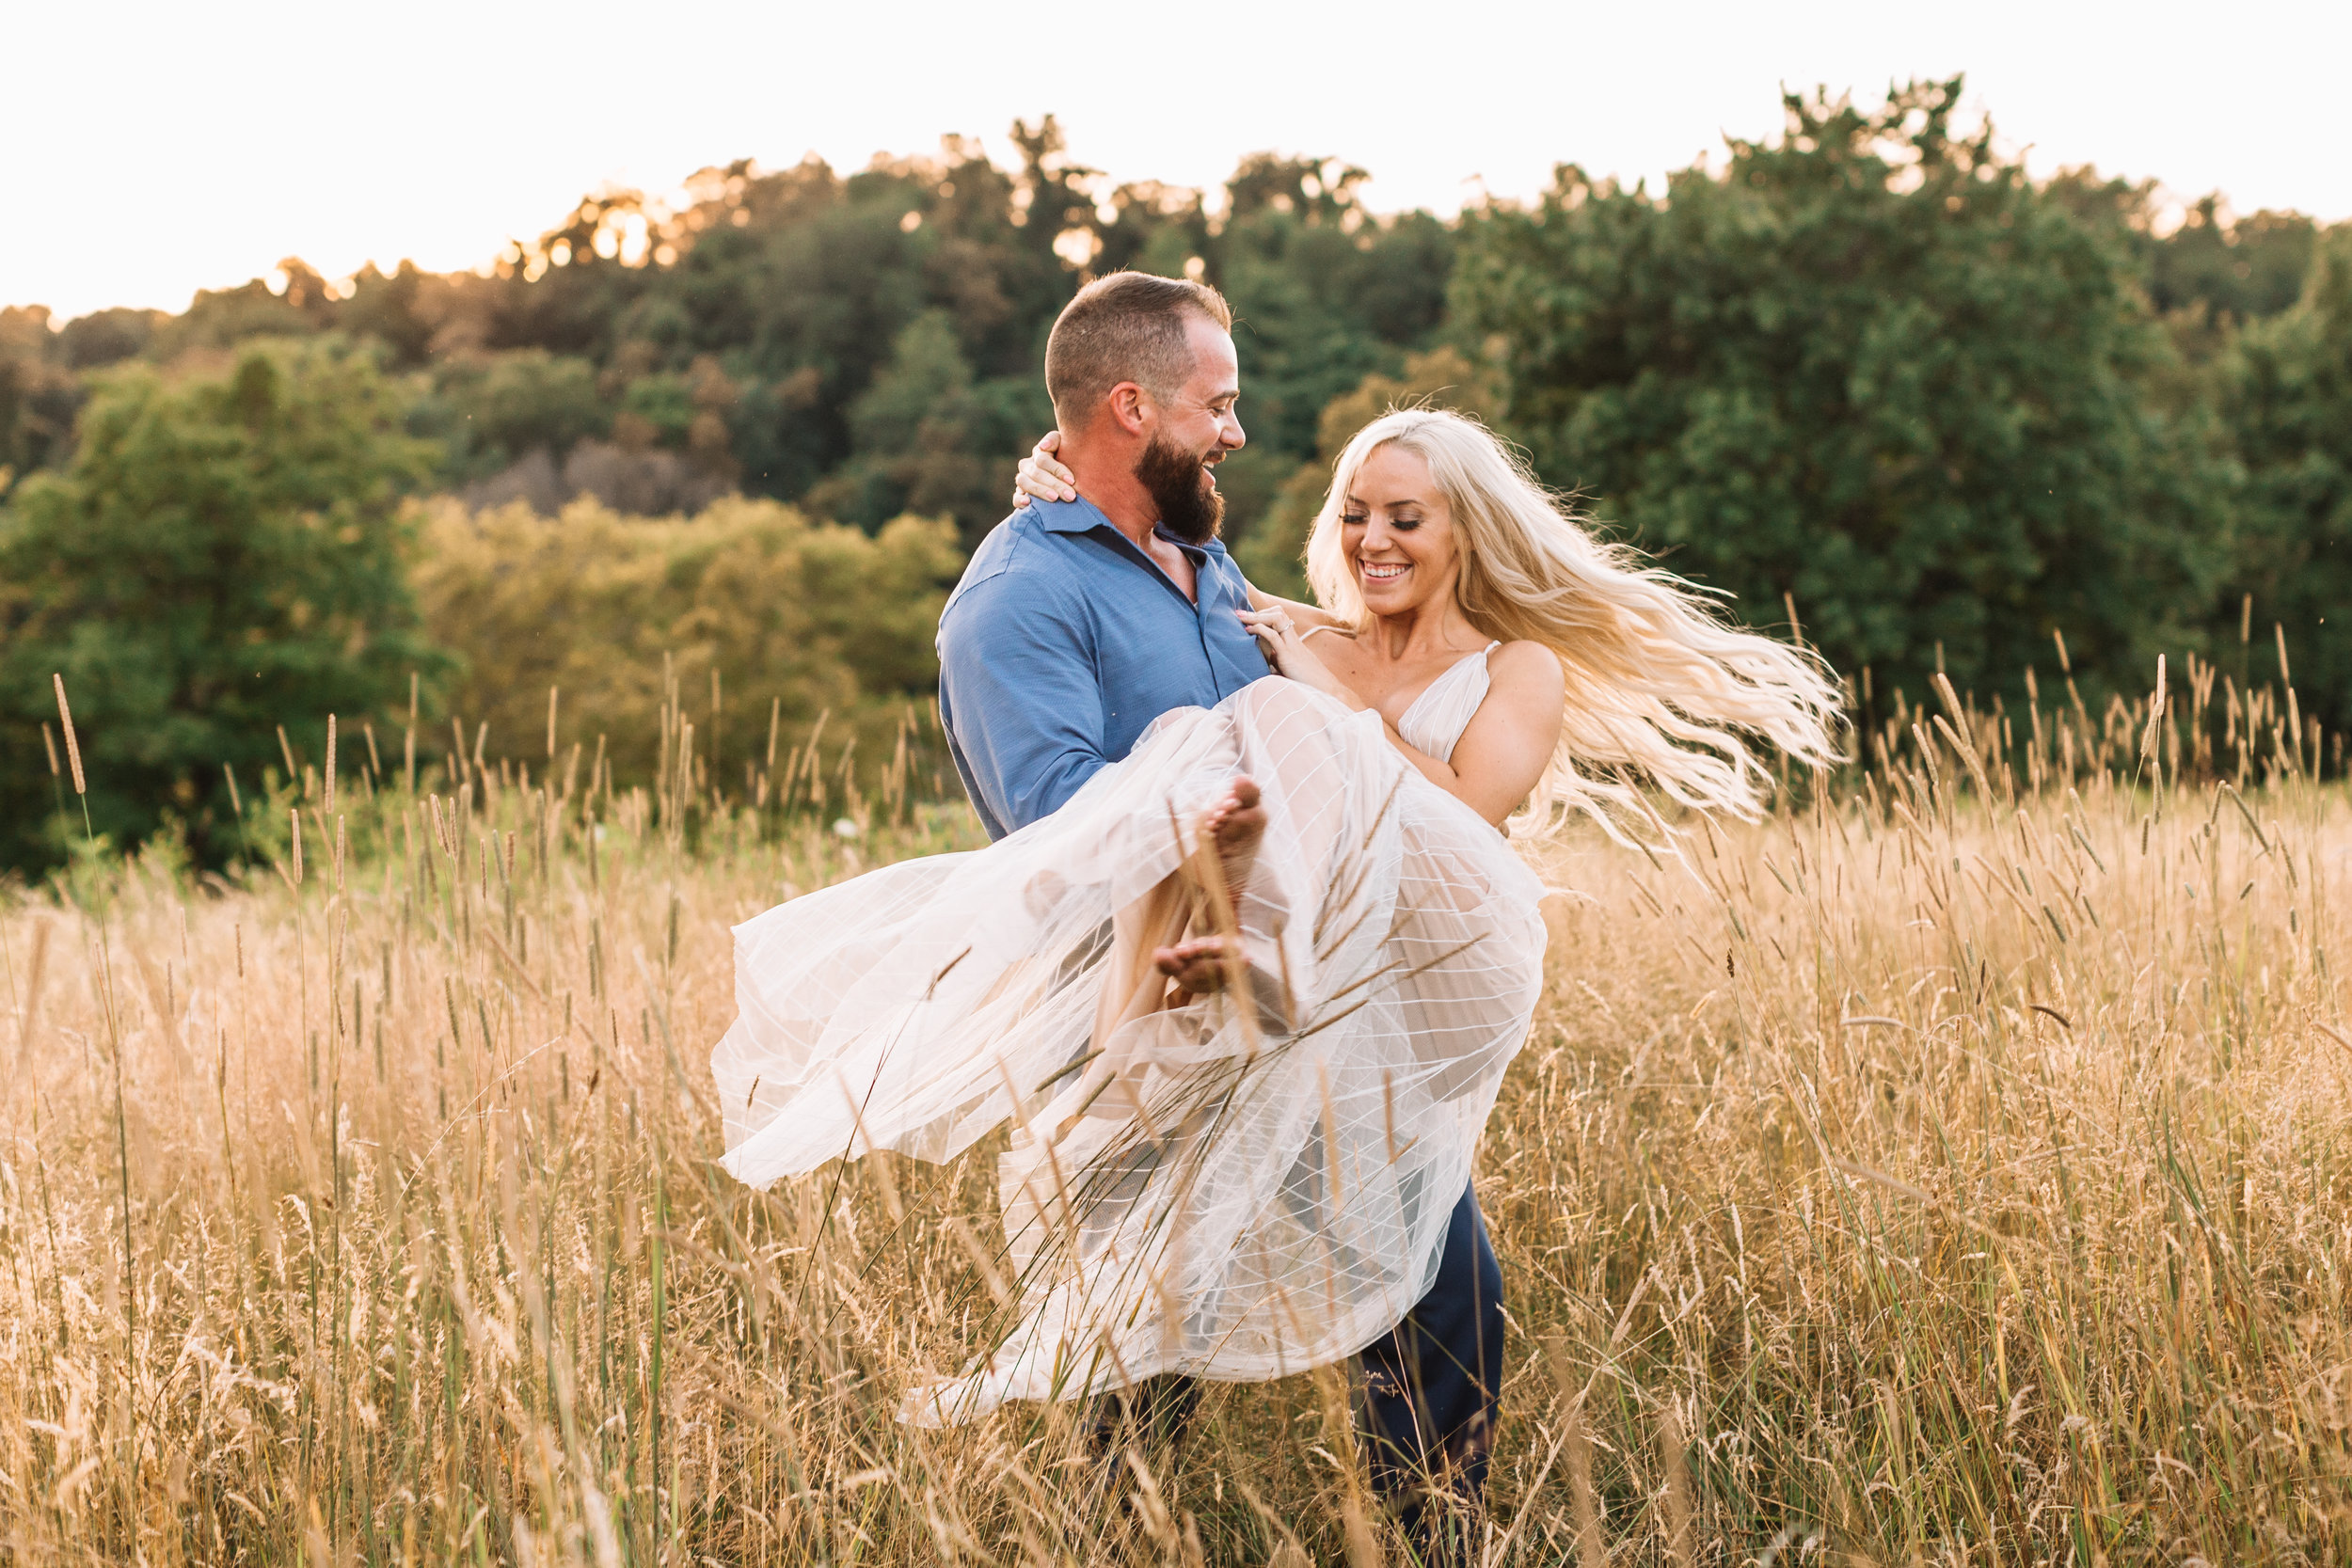 """""""Incredible"""" - My fiancé and I are working with Kristin for our wedding in June of 2019. I could not rave enough about her if I tried. I was very, VERY picky when picking a photographer! Our engagement photos turned out exactly how I wanted and beyond. I had a very specific vision for what I wanted and she captured it so perfectly and did everything we wanted. She was so sweet and made us feel so comfortable. Words cannot even begin to explain how excited I am for her to do our wedding photos in 6 months. You will not be disappointed if you choose Kristin as your photographer I can guarantee it!- Elyse, Fombell PA"""